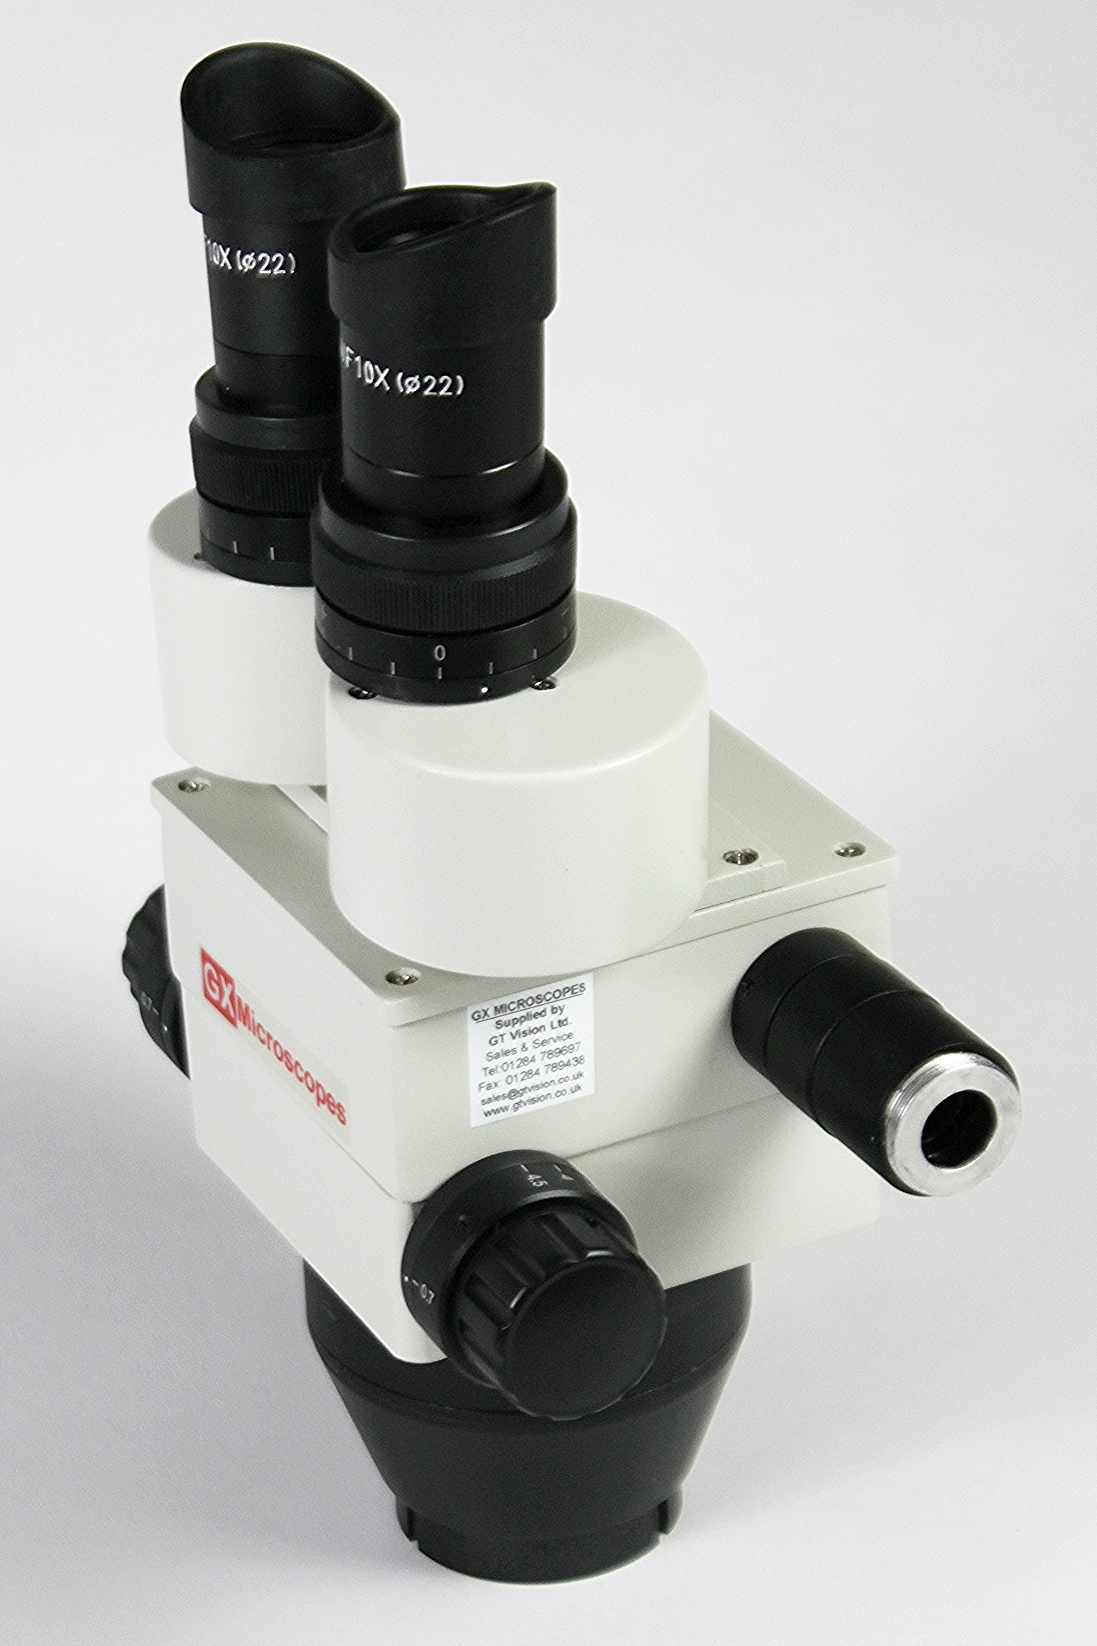 ID_1043_XTL-AXIAL_3_-_Axial_View_Stereo_Zoom_Microscope_GX_Microscopes_by_GT_Vision_Ltd